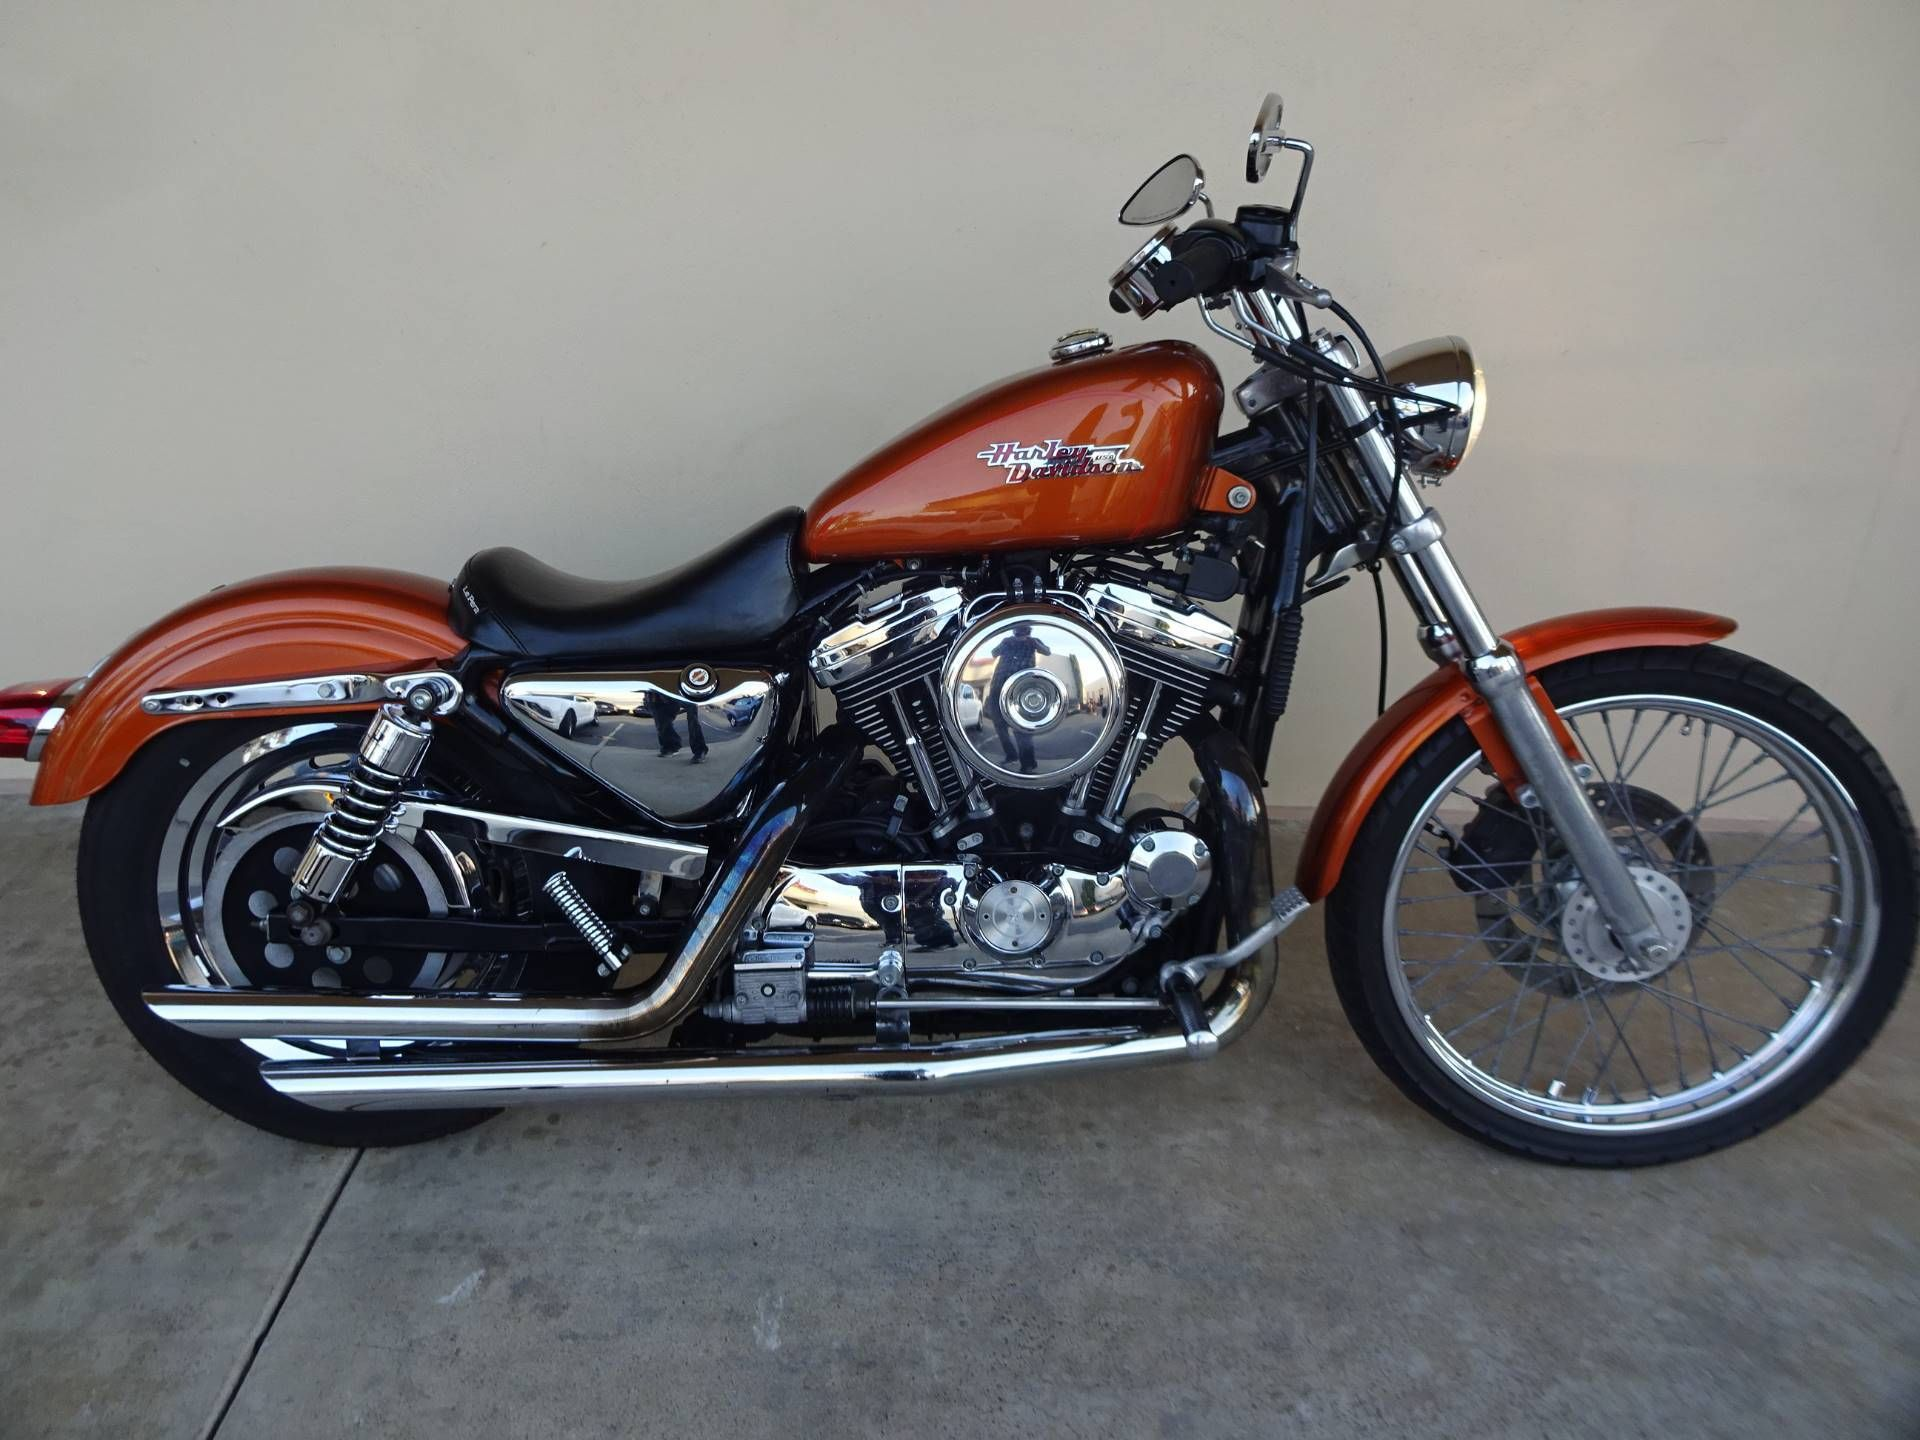 check out this 2000 harley davidson xl 1200c sportster 1200 custom listing in temecula ca. Black Bedroom Furniture Sets. Home Design Ideas